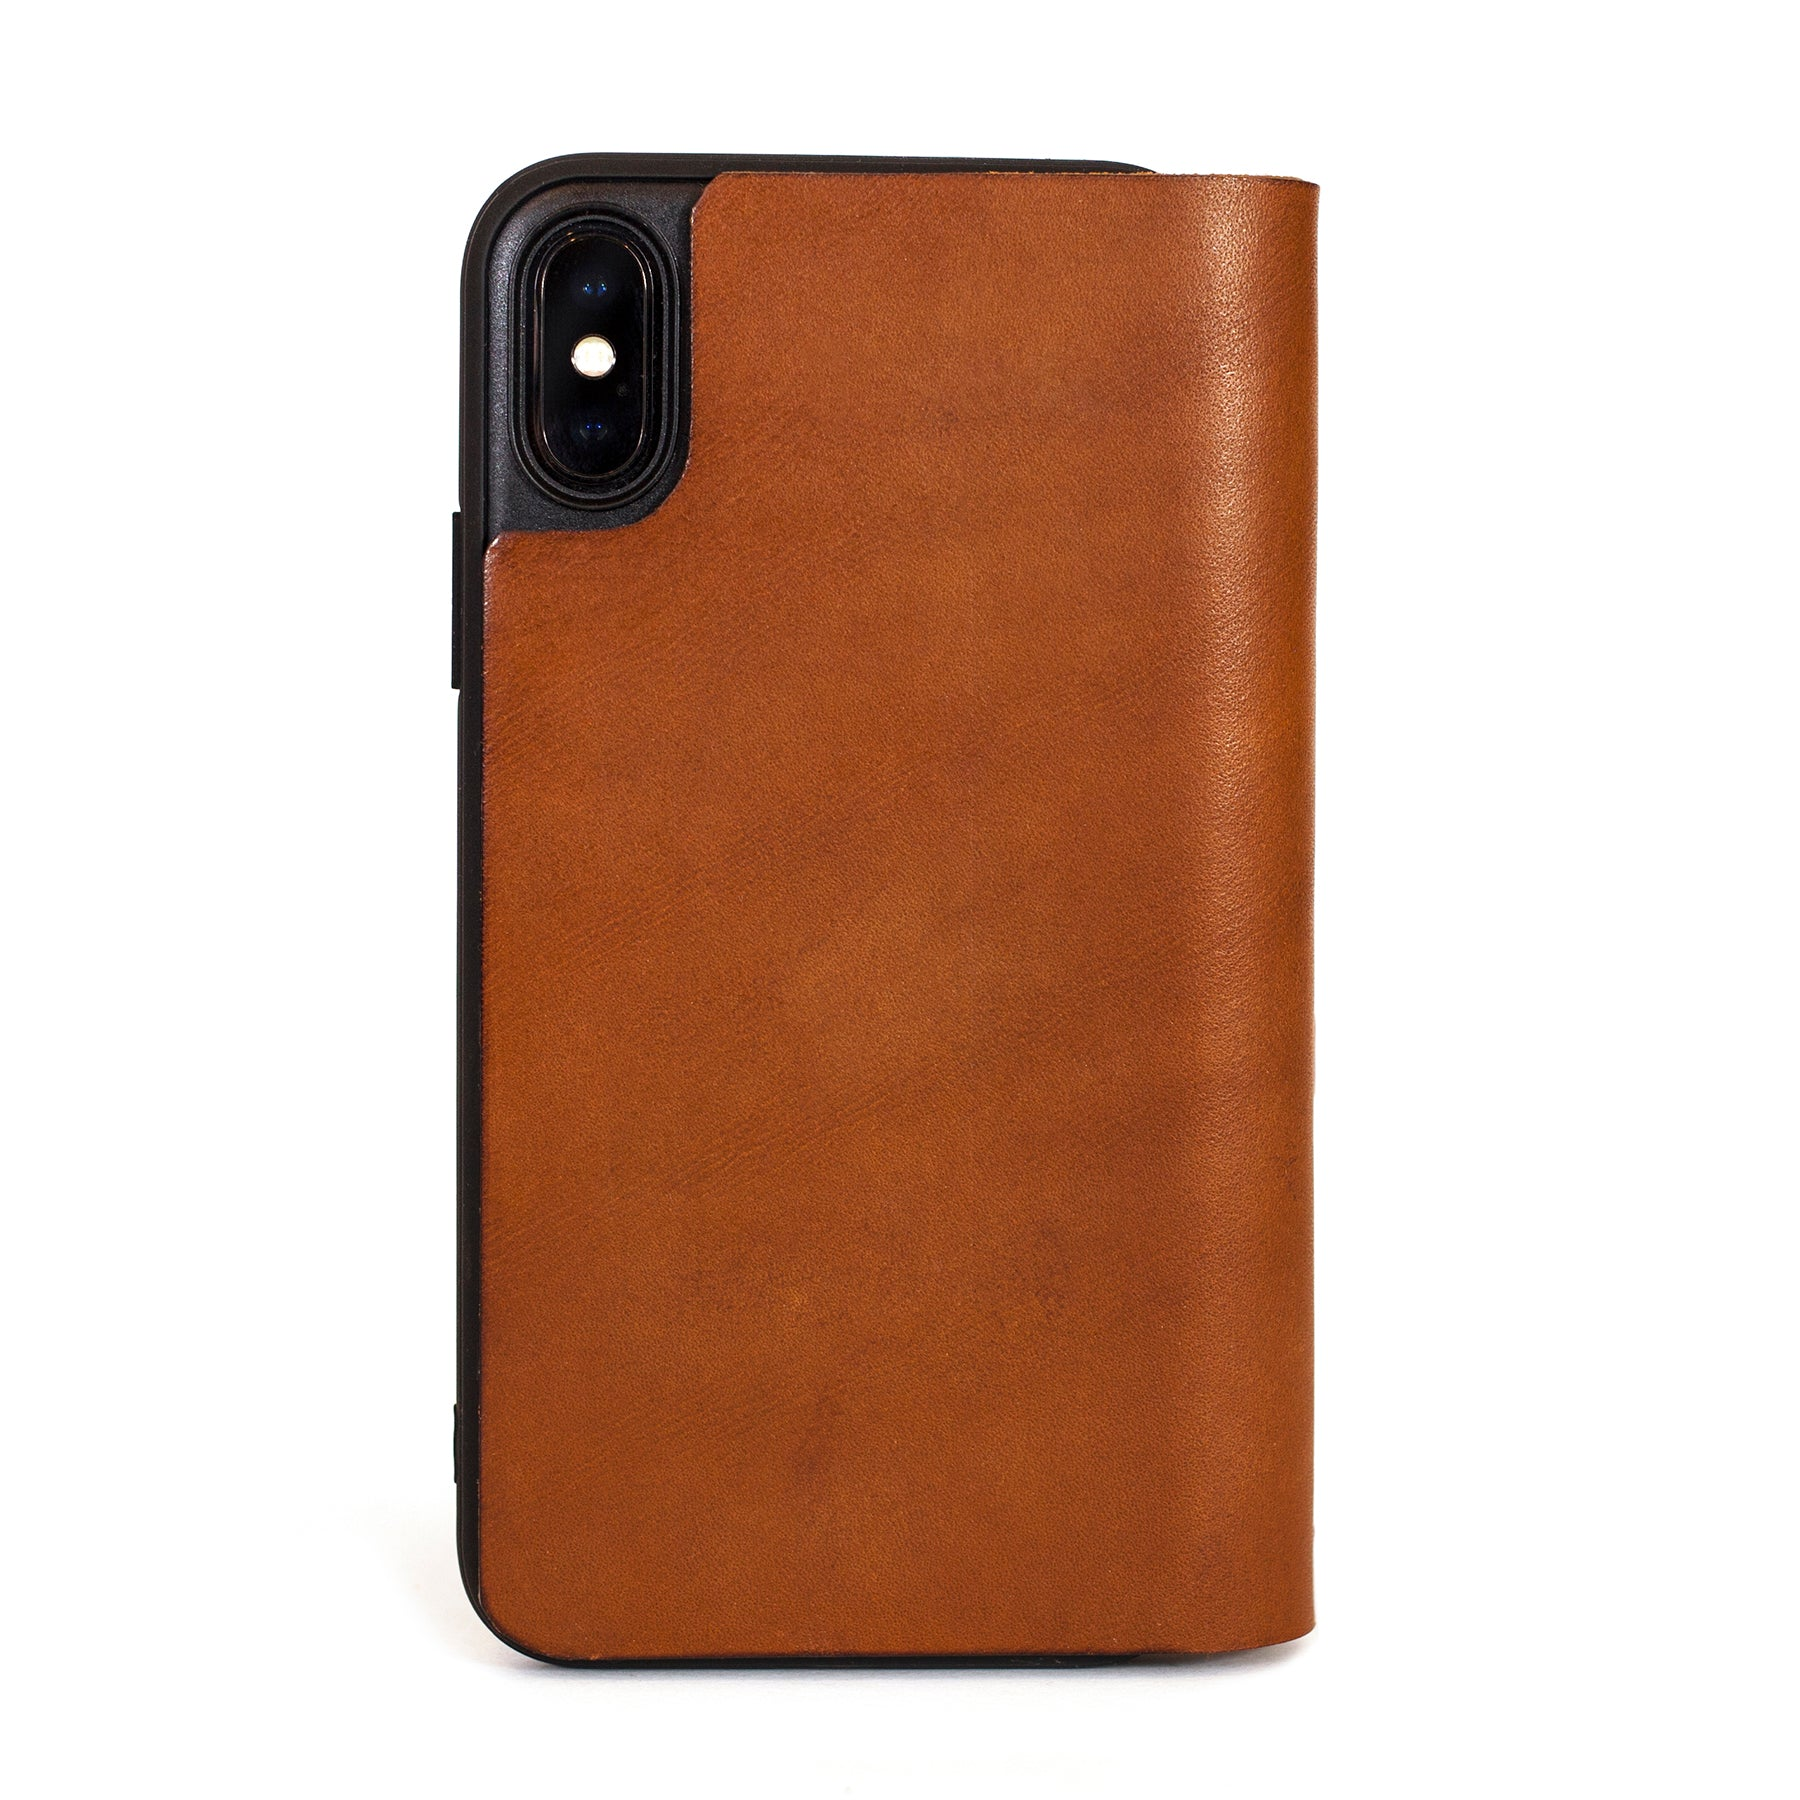 iPhone X leather case, made in the usa, iphone X, iphone wallet, leather iphone X case, new iphone, most recent iphone, iphone update, iphone 10